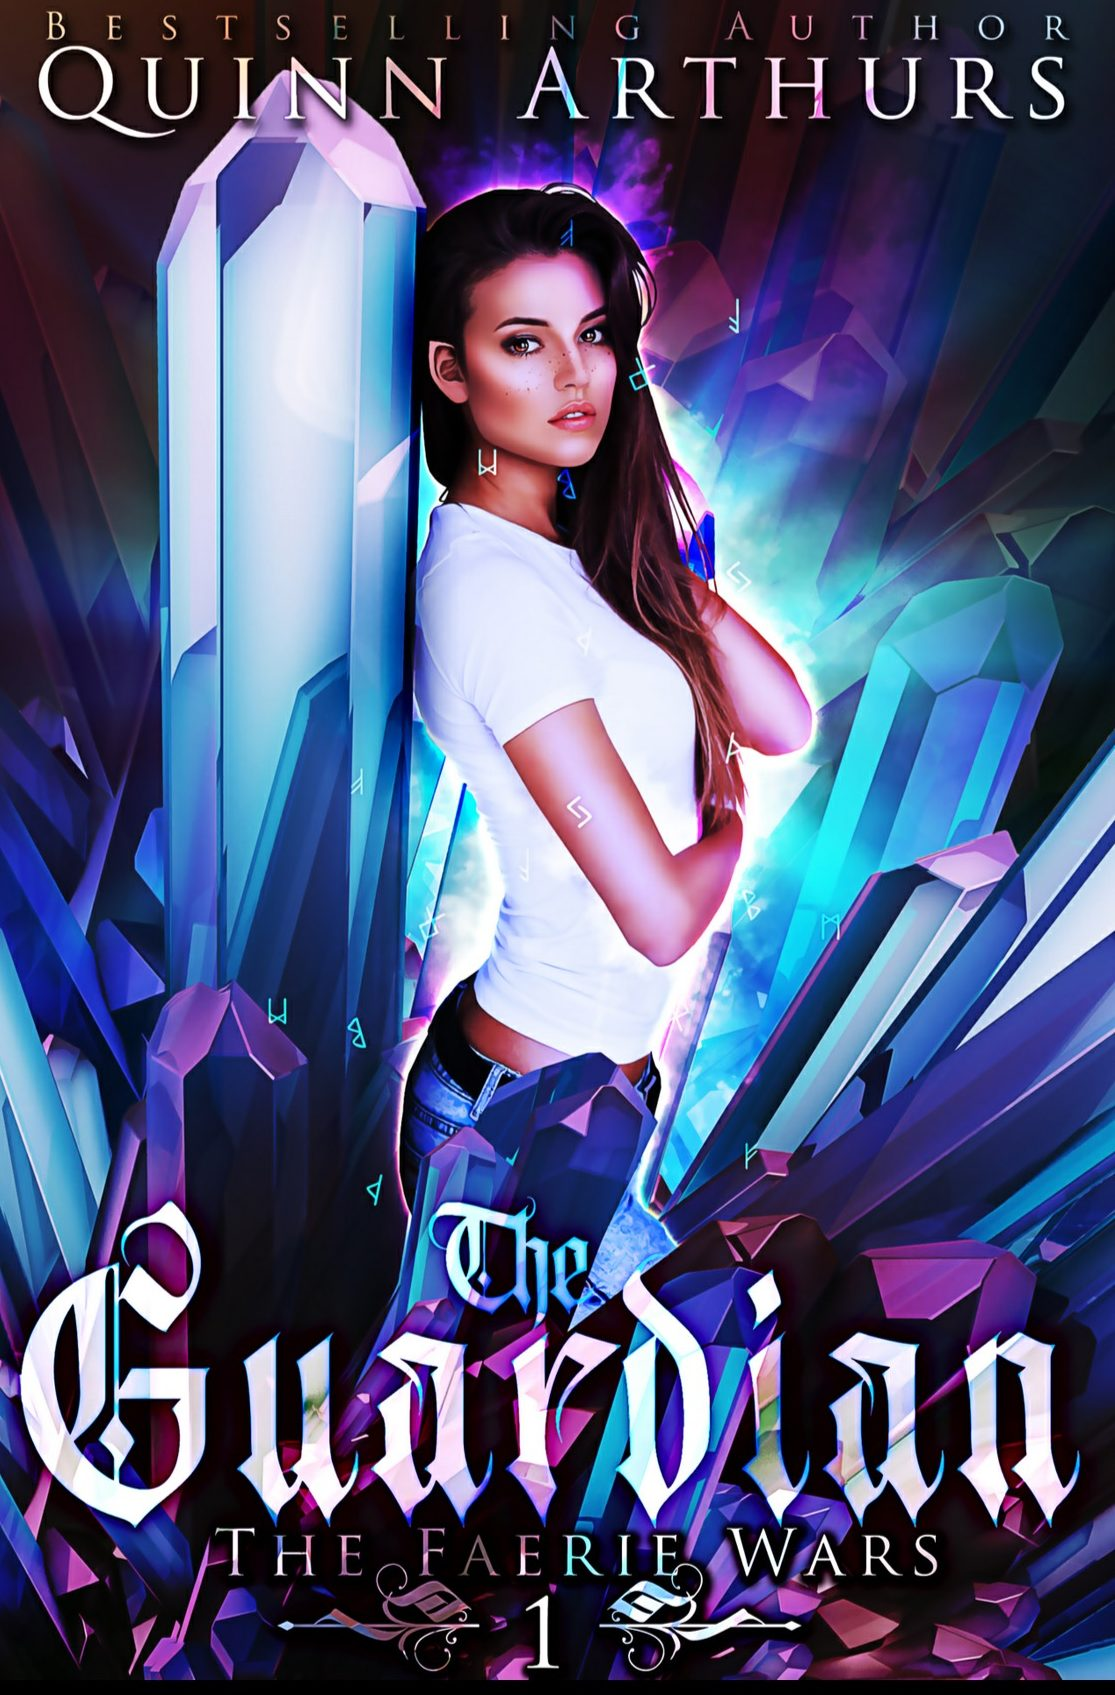 The Guardian by Quinn Arthurs - A Book Review #BookReview #NewRelease #PNR #RH #WhyChoose #Fantasy #Interesting